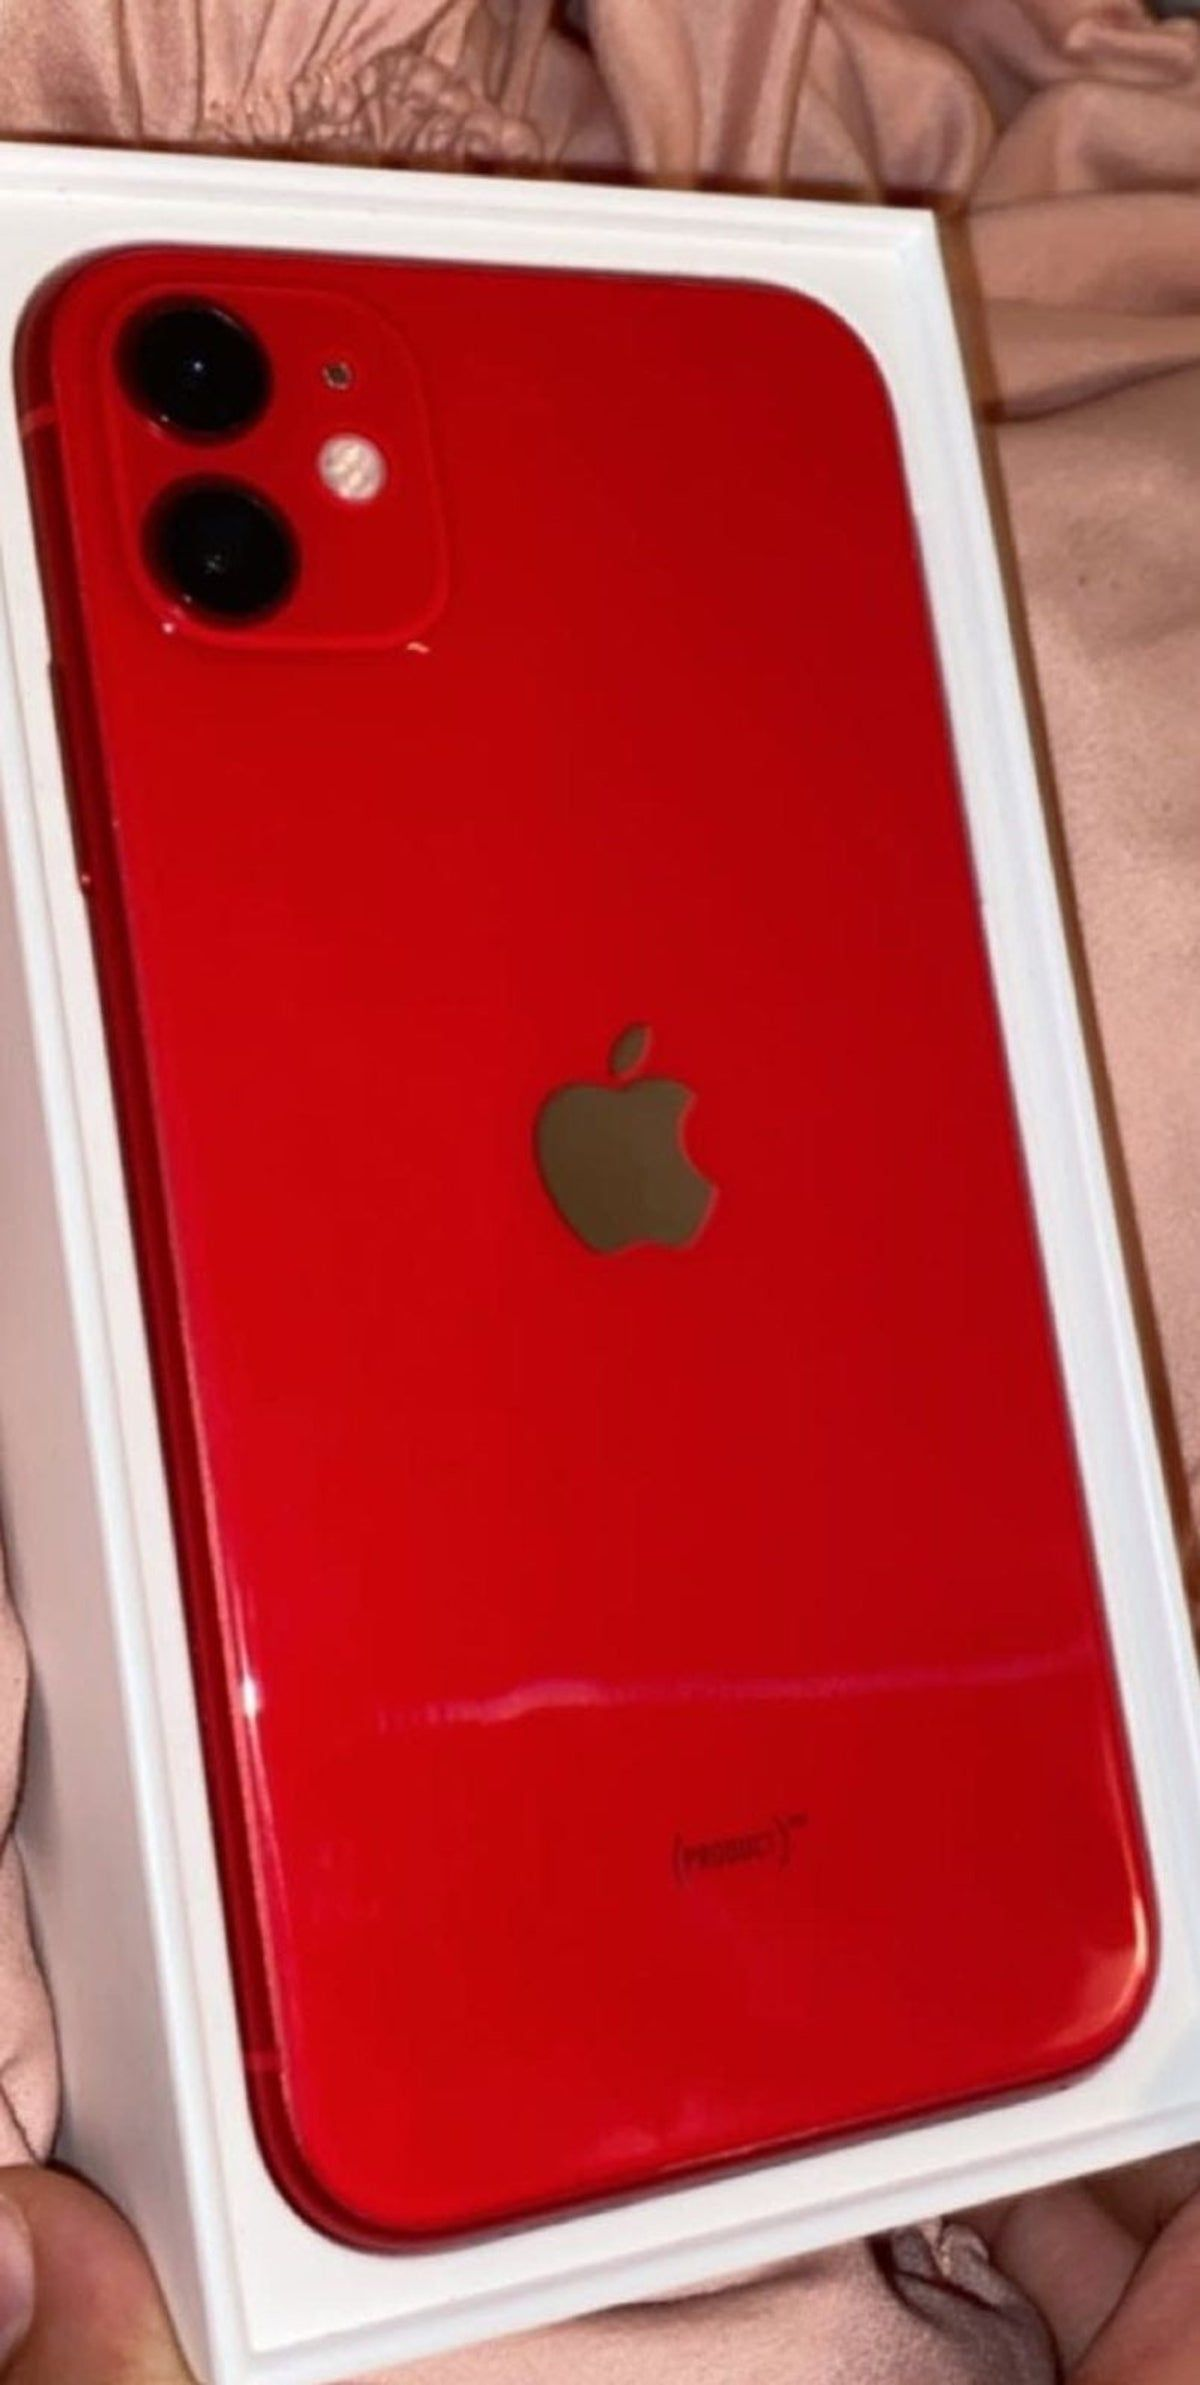 Iphone 11 Product Red 64 Gb In 2020 Iphone Apple Products Iphone 11 Colors